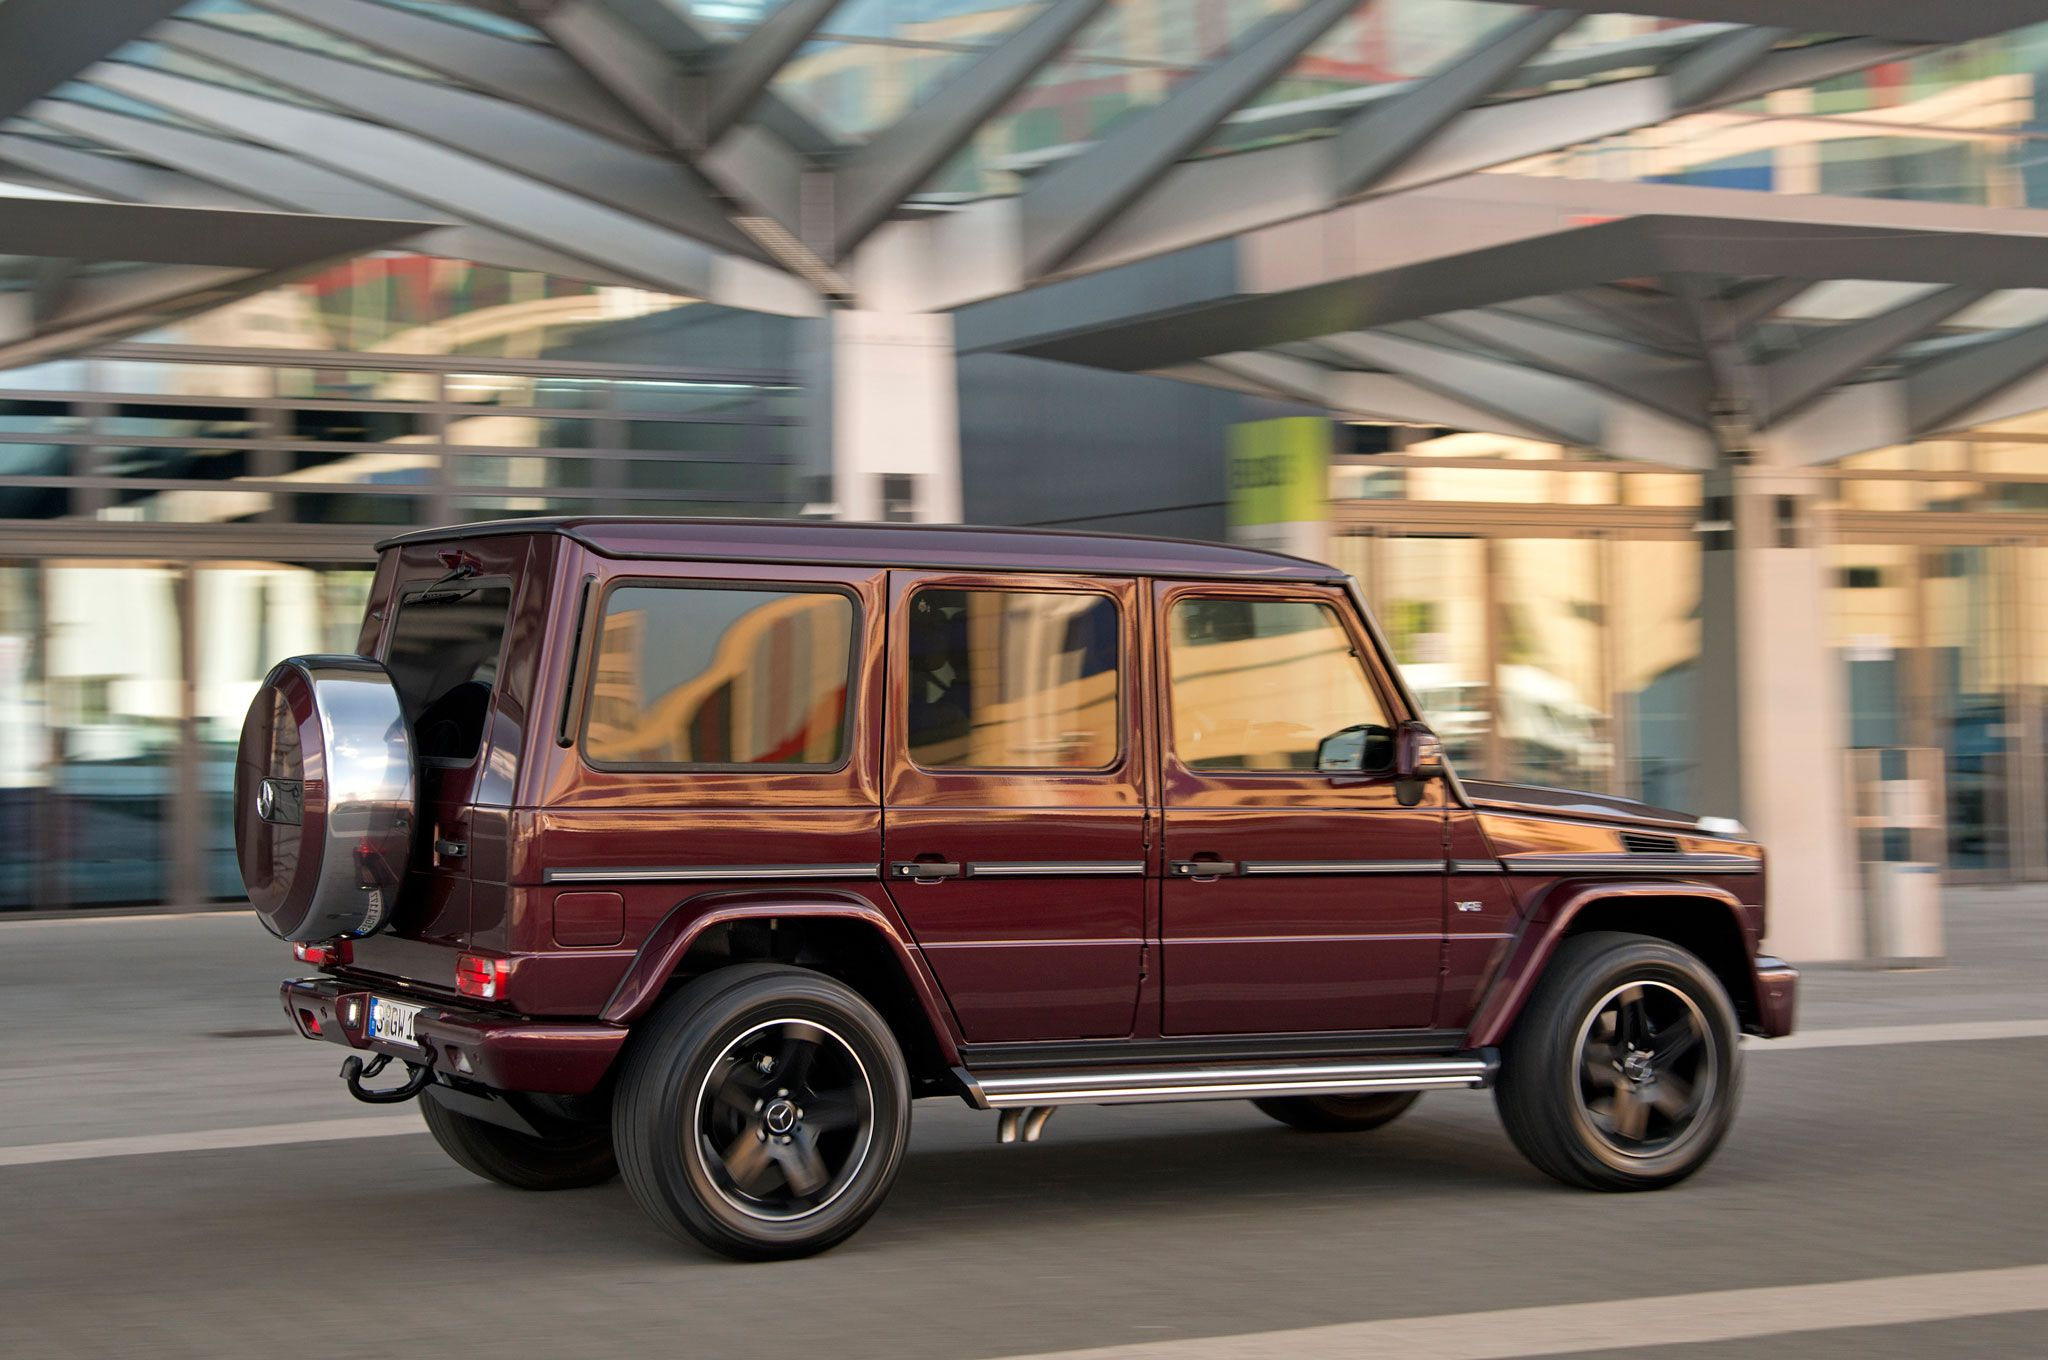 2019 Mercedes Benz G550 photo - 2